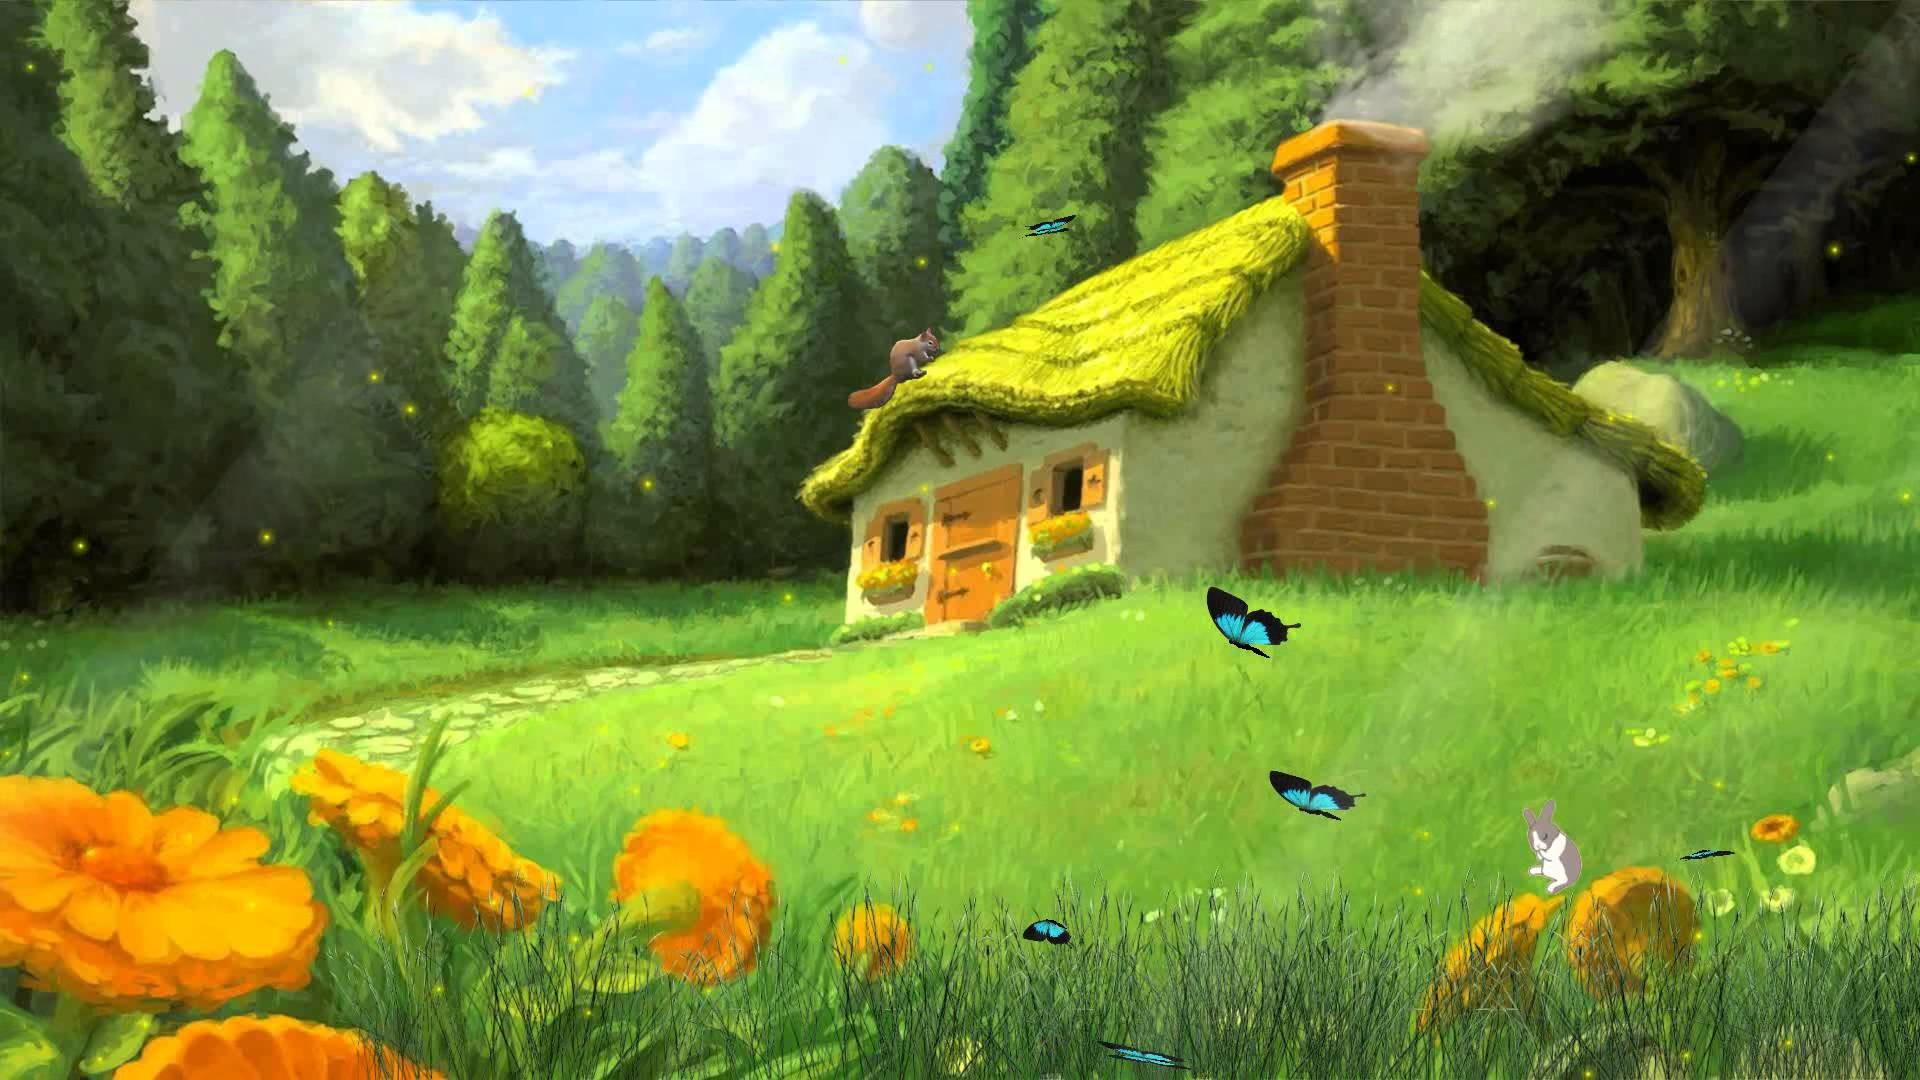 1920x1080 Tale Houses Animated Wallpaper http://www.desktopanimated.com/ - YouTube